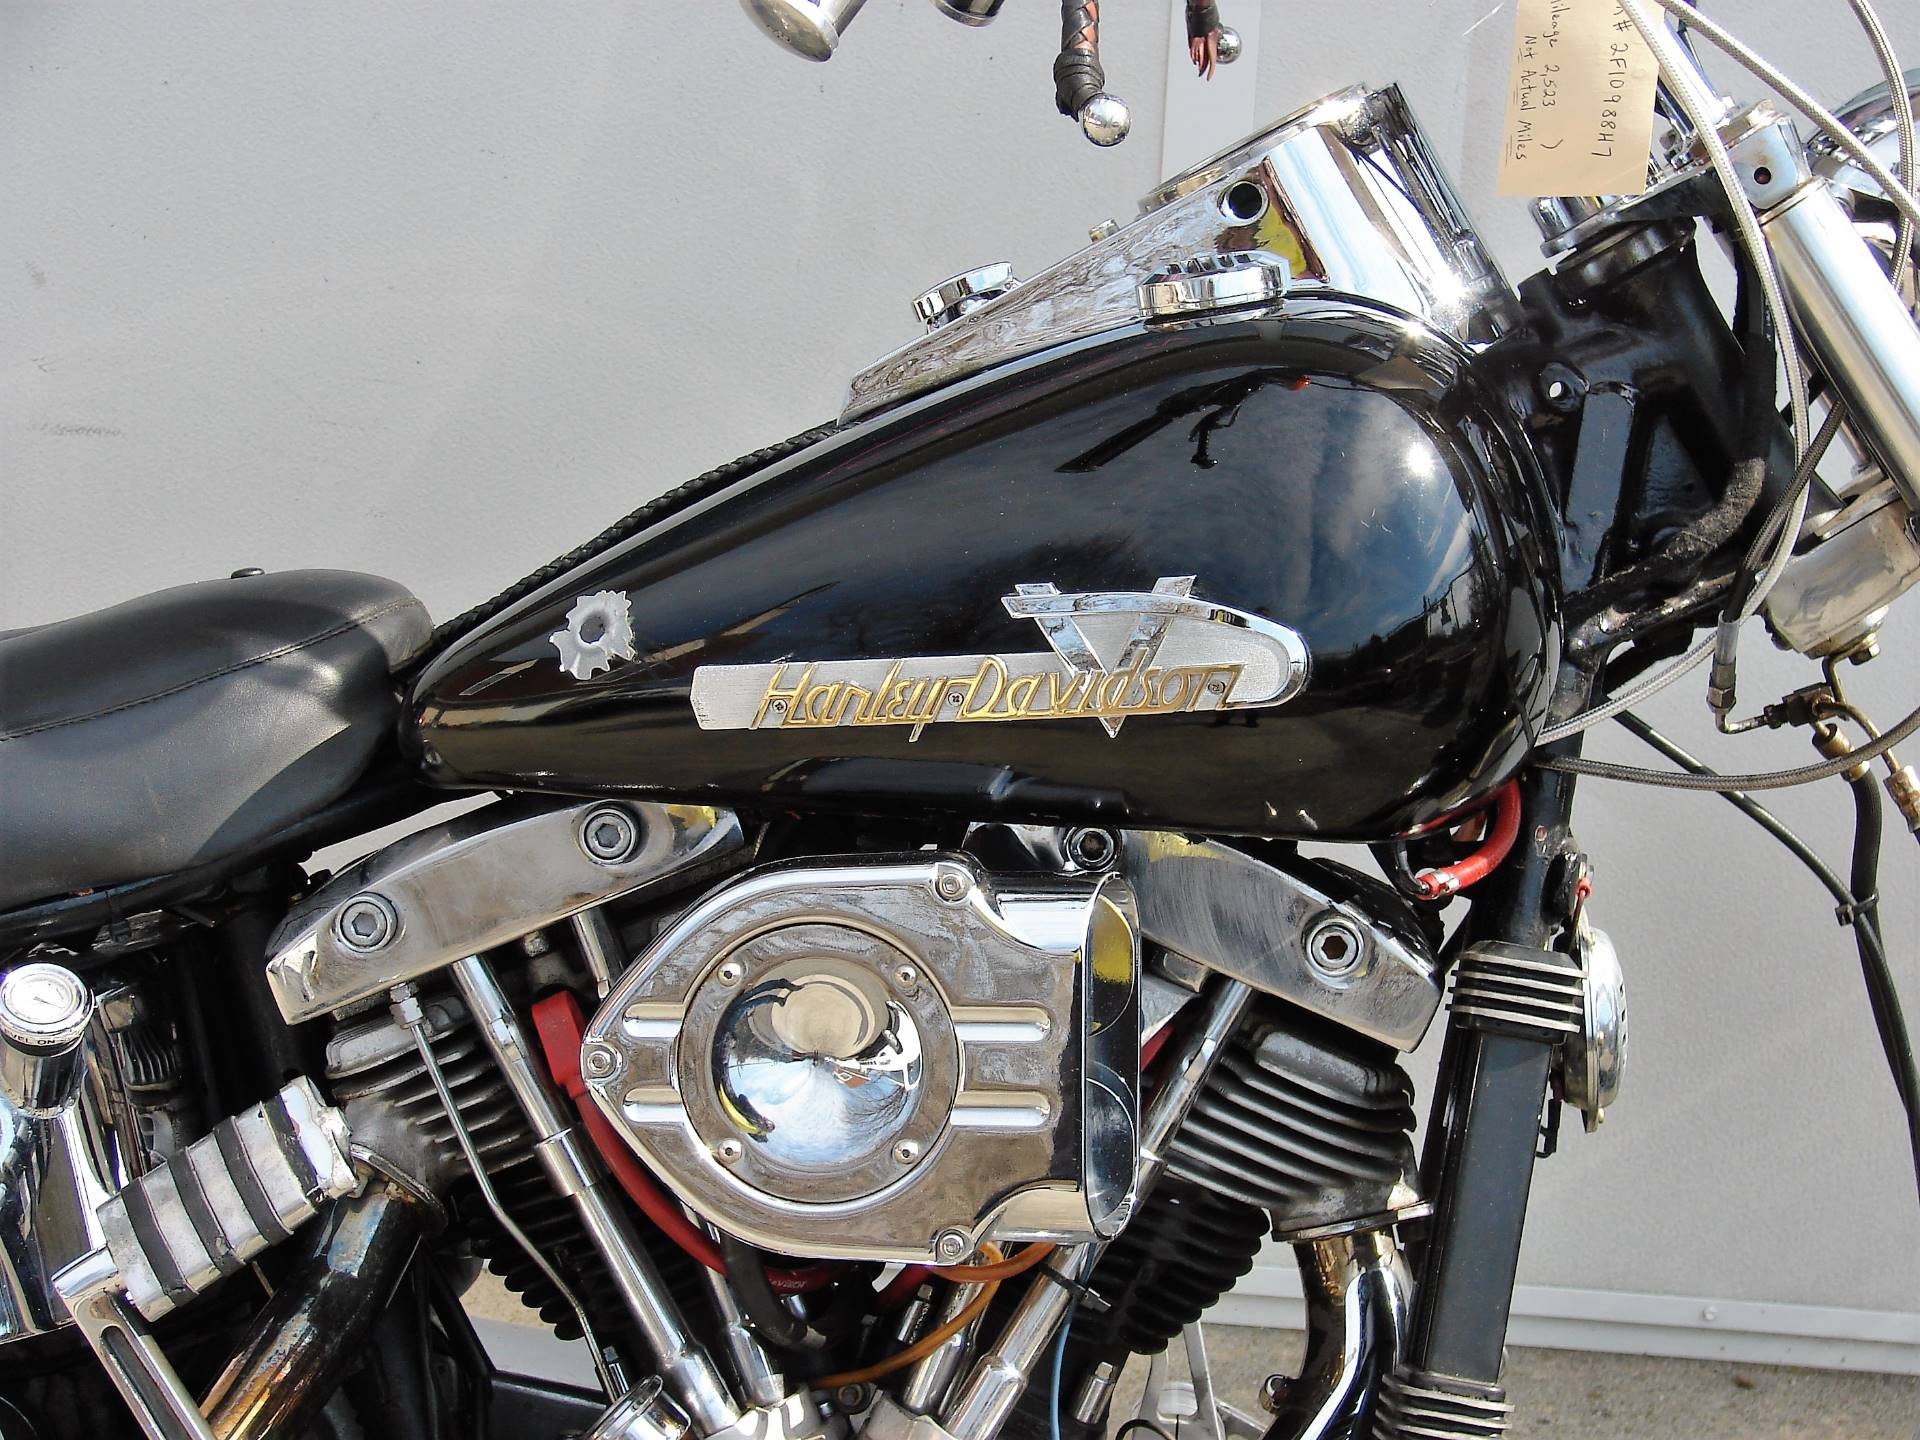 1977 Harley-Davidson Shovel Head  FXS-1200 in Williamstown, New Jersey - Photo 4